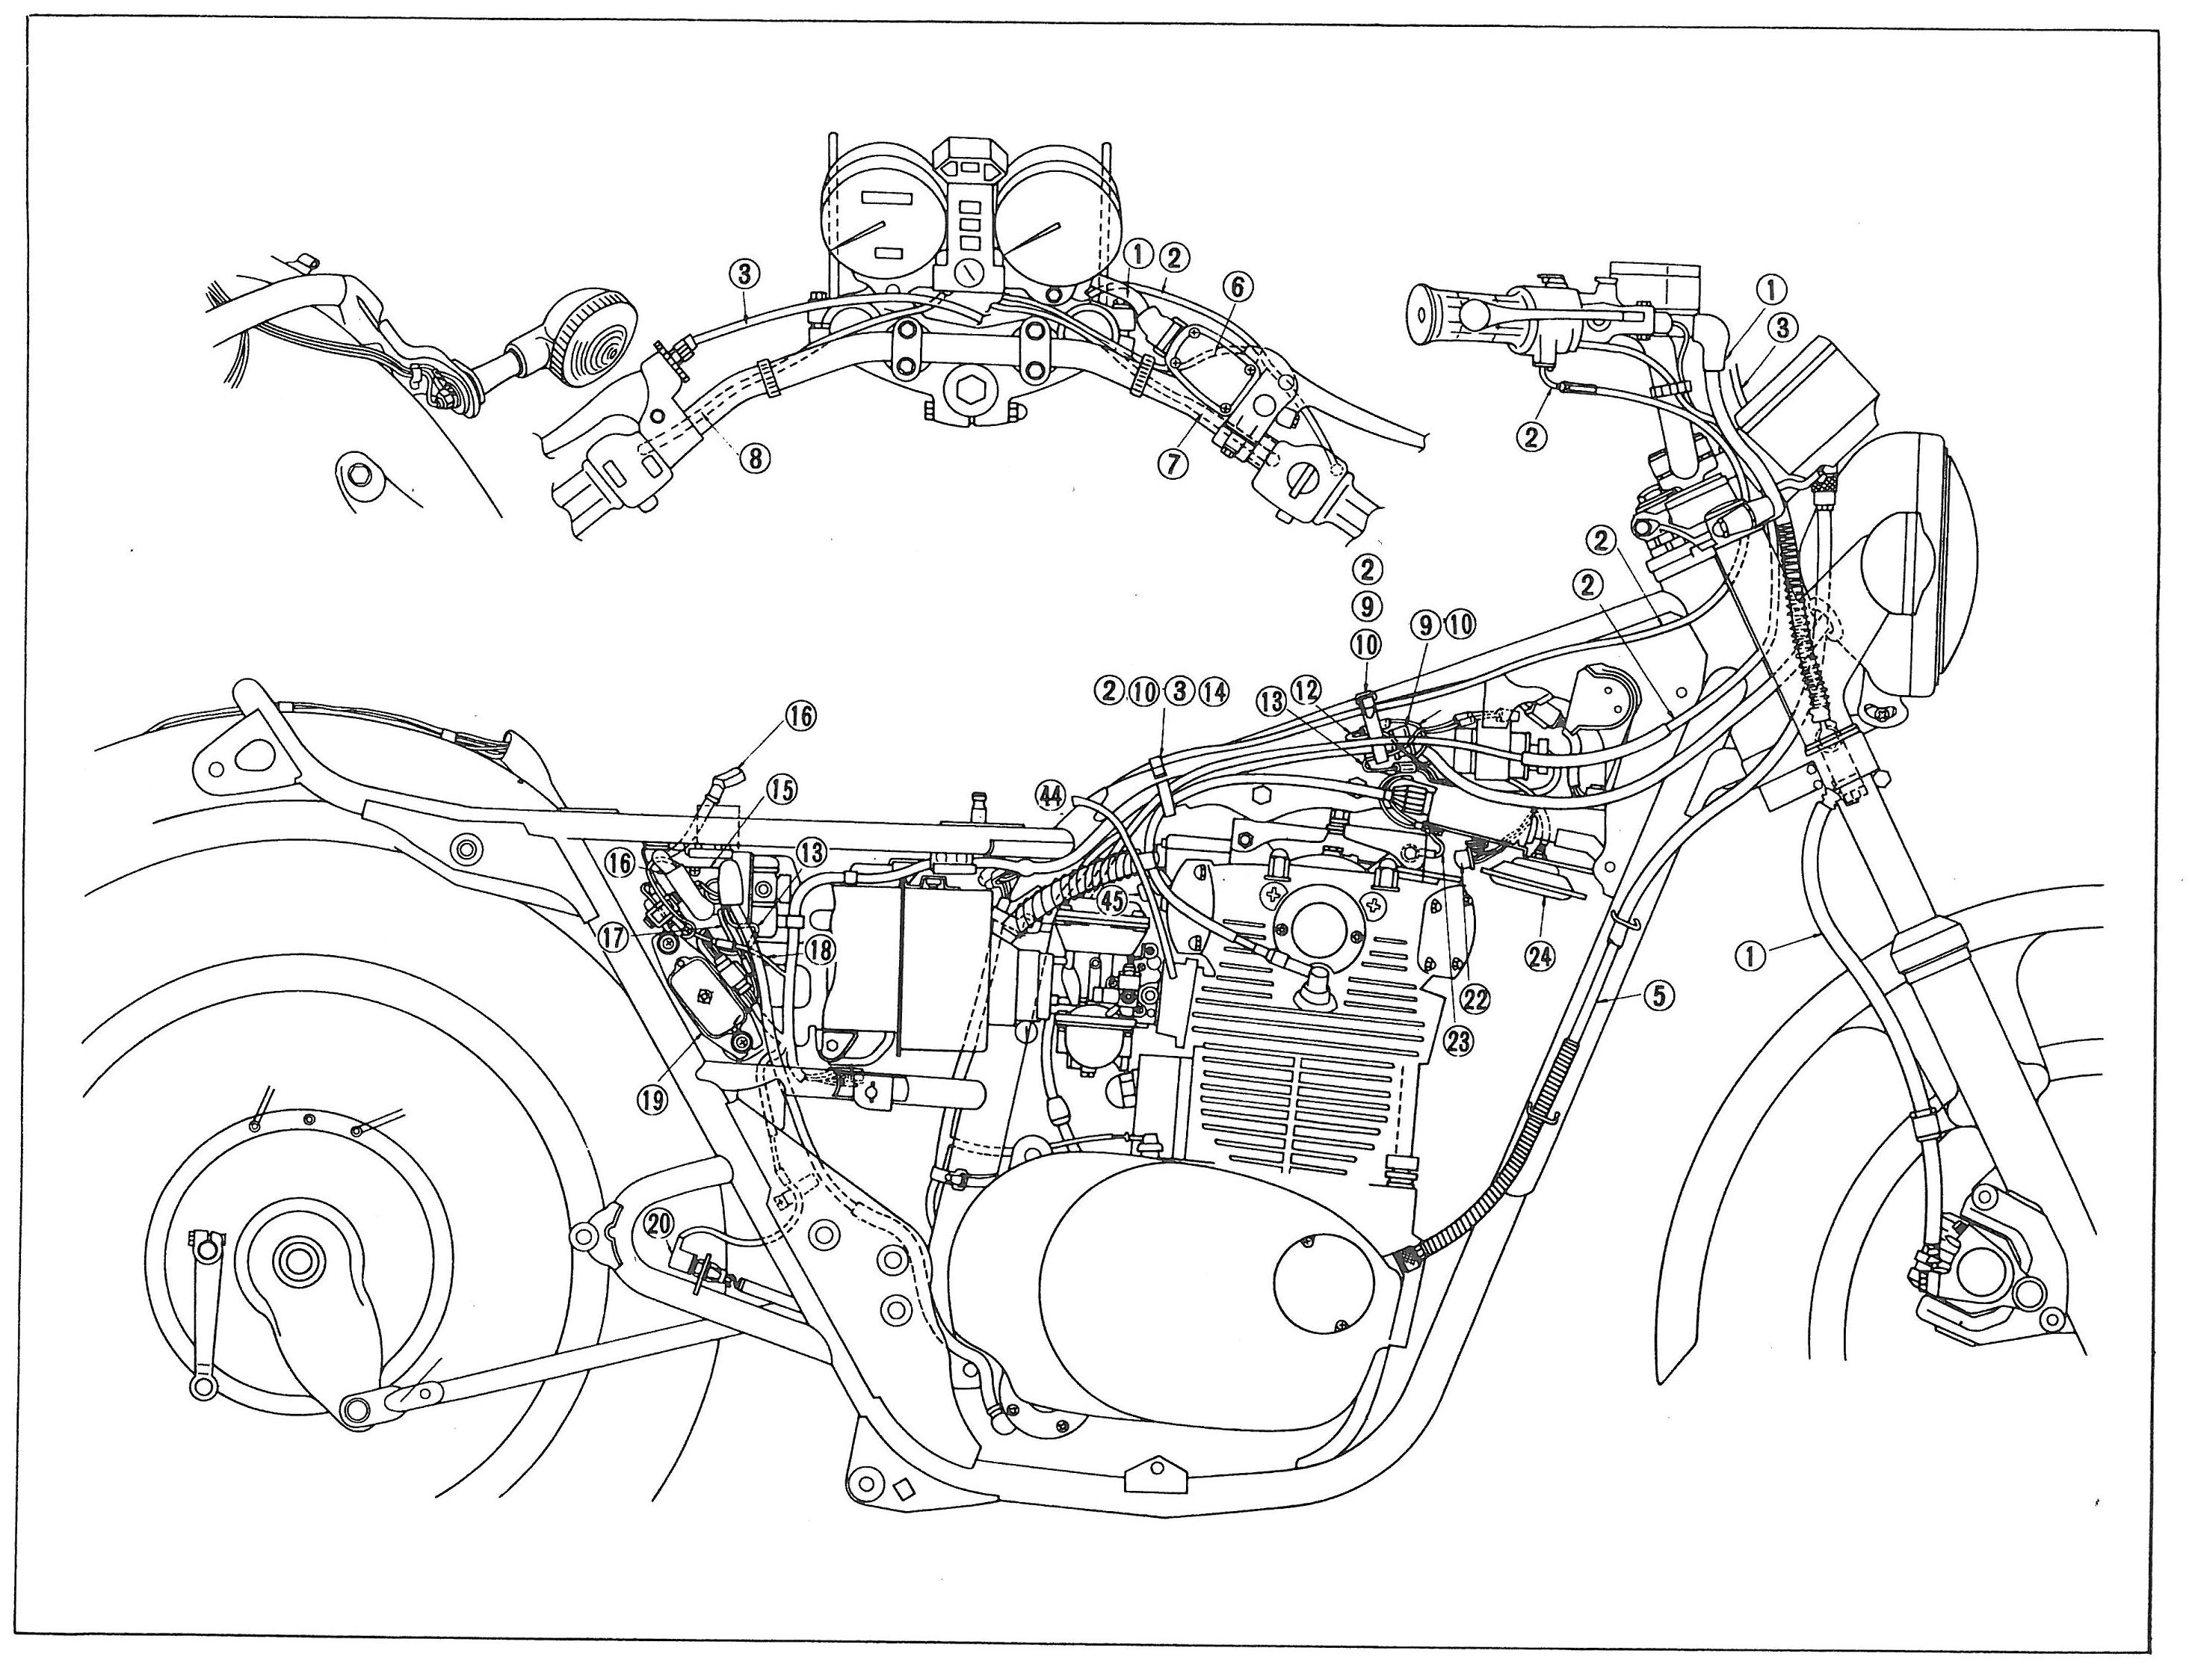 xs650 wiring schematic engine | wiring library 1981 xs650 engine diagram